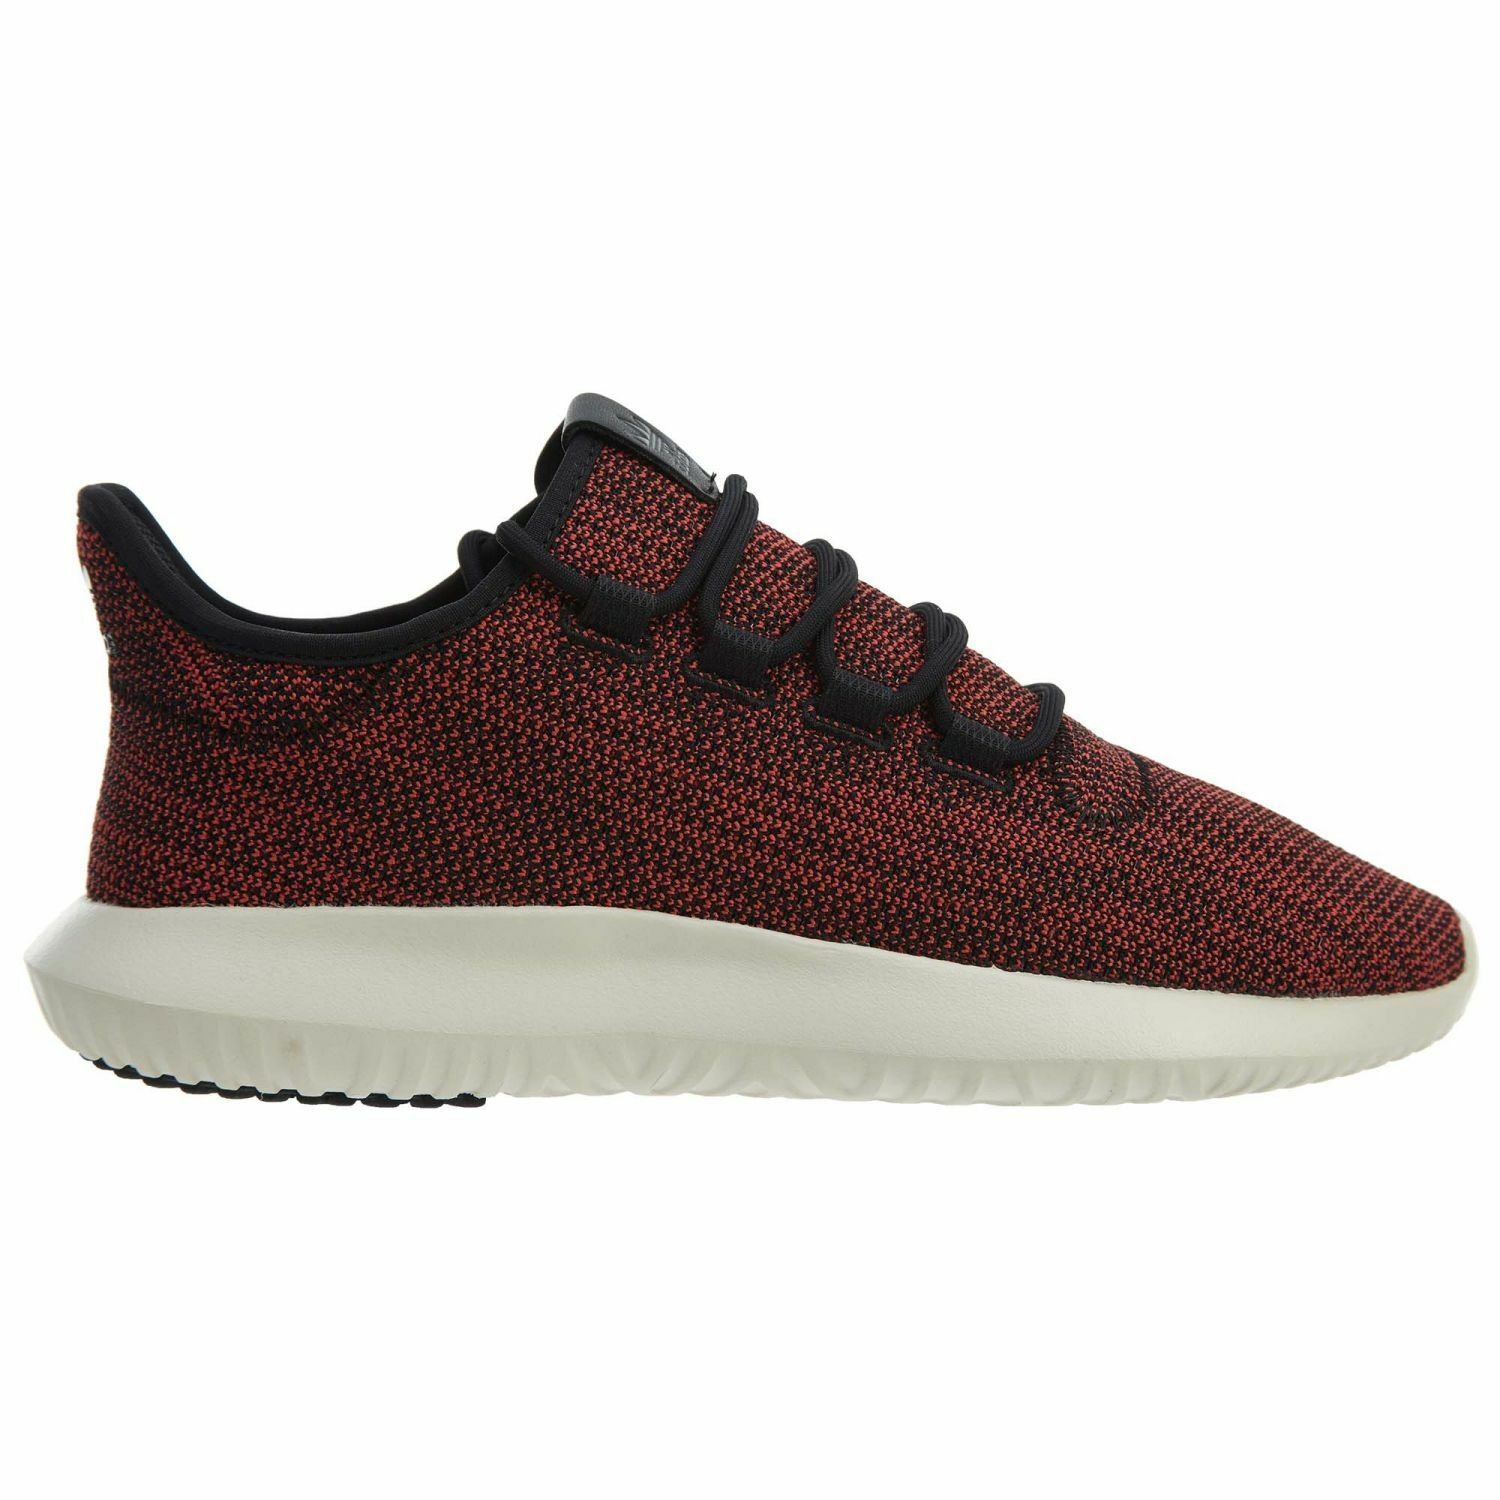 Adidas Tubular Shadow Knit CK Mens AC8791 Trace Scarlet Athletic Shoes Size 10